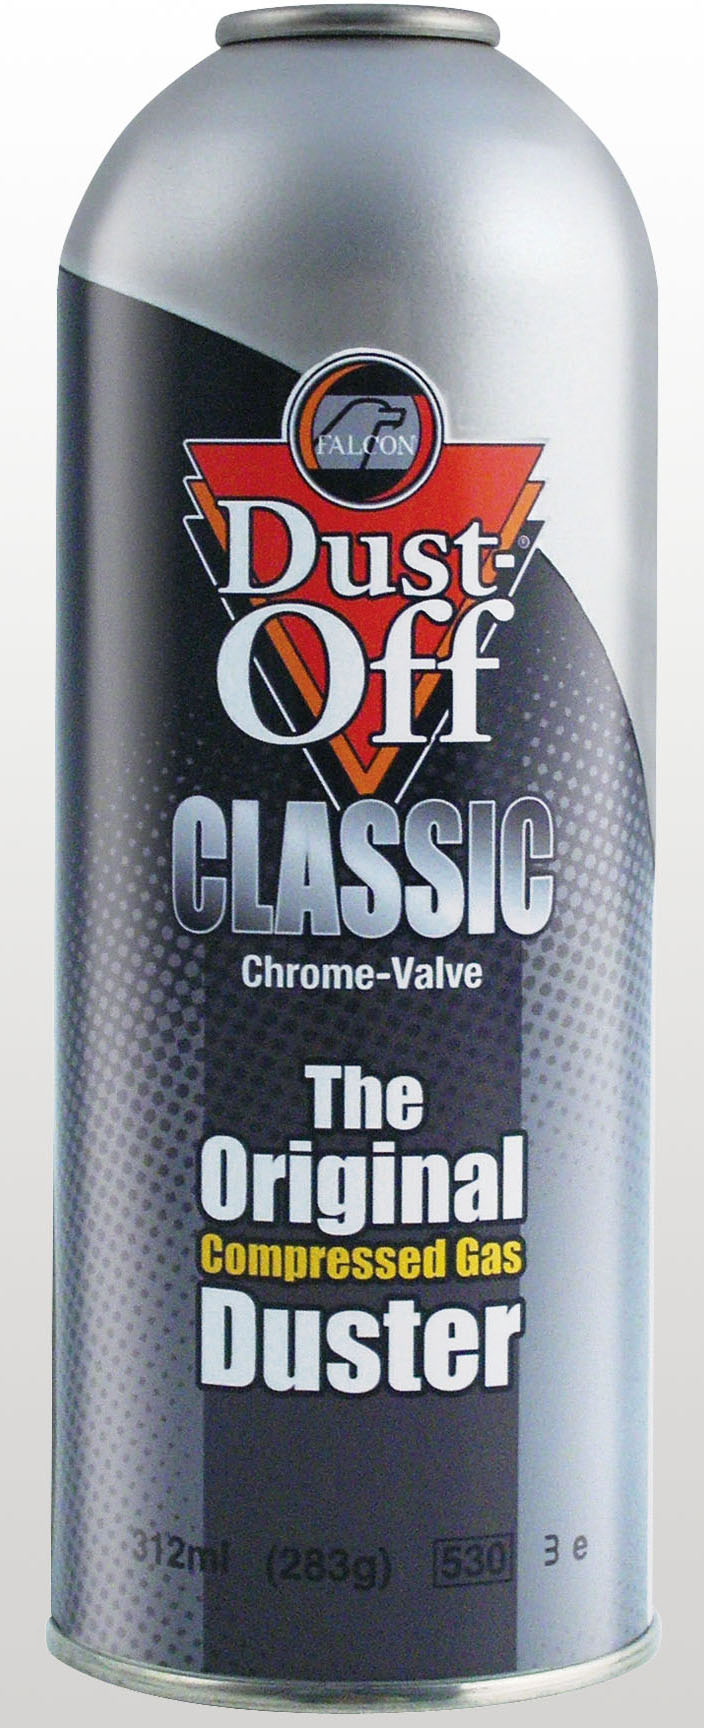 DUST-OFF Chrome-Valve CLASSIC Refill